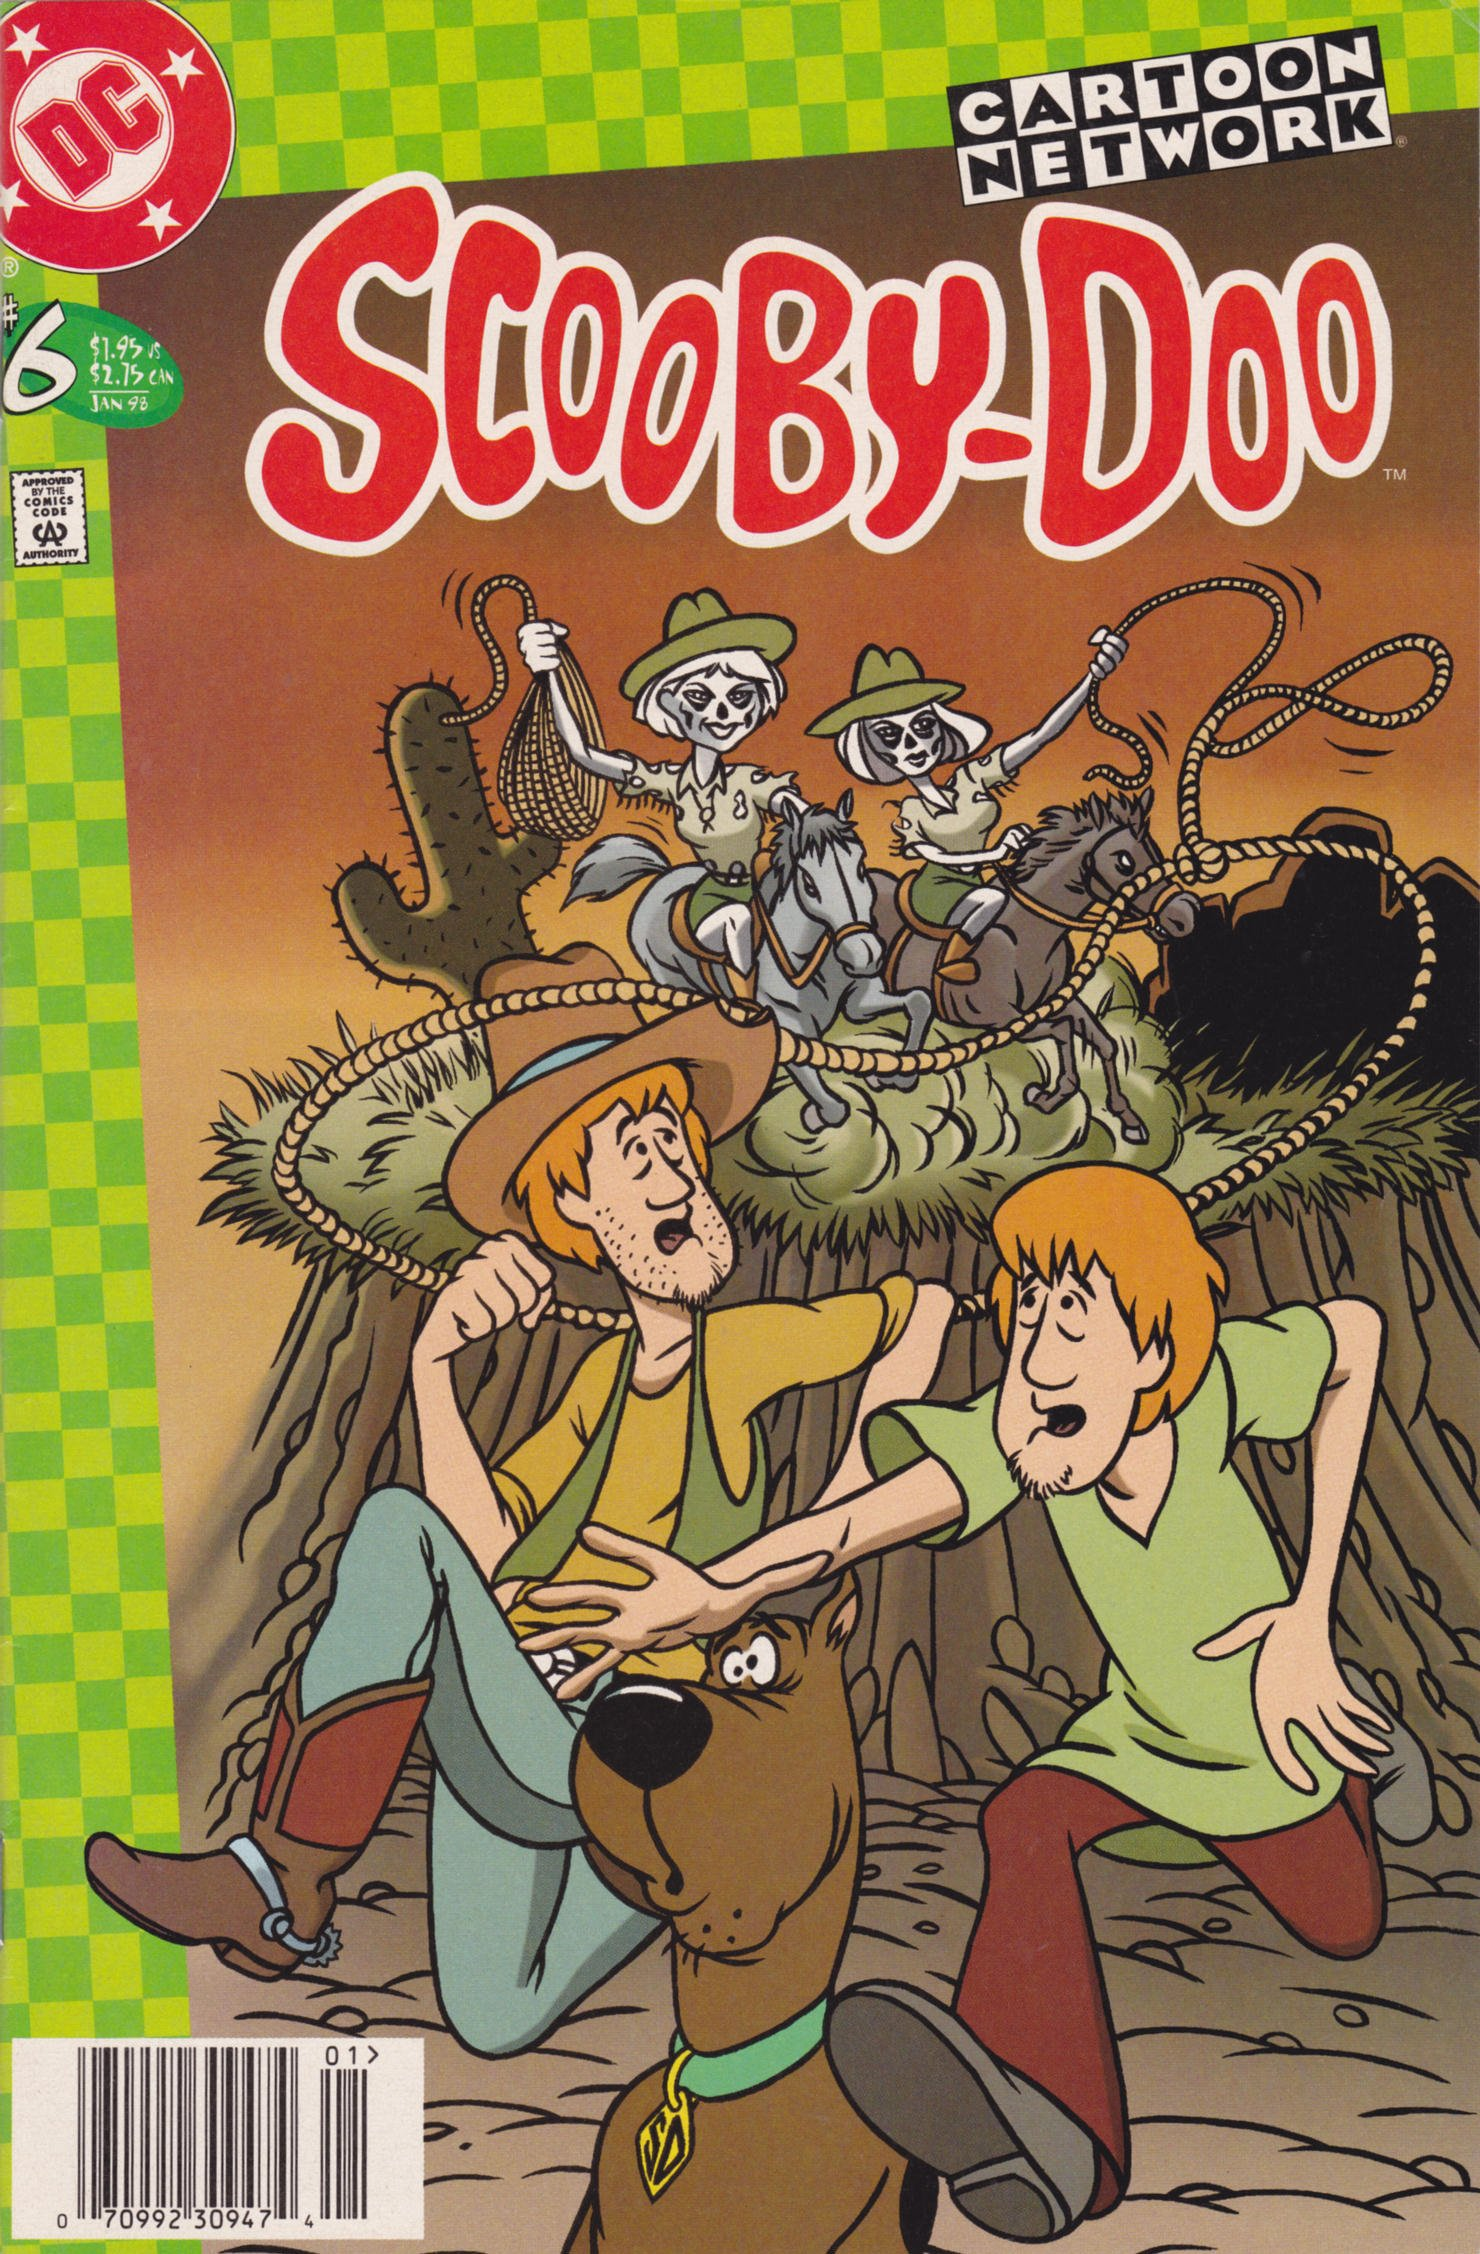 Read online Scooby-Doo (1997) comic -  Issue #6 - 1